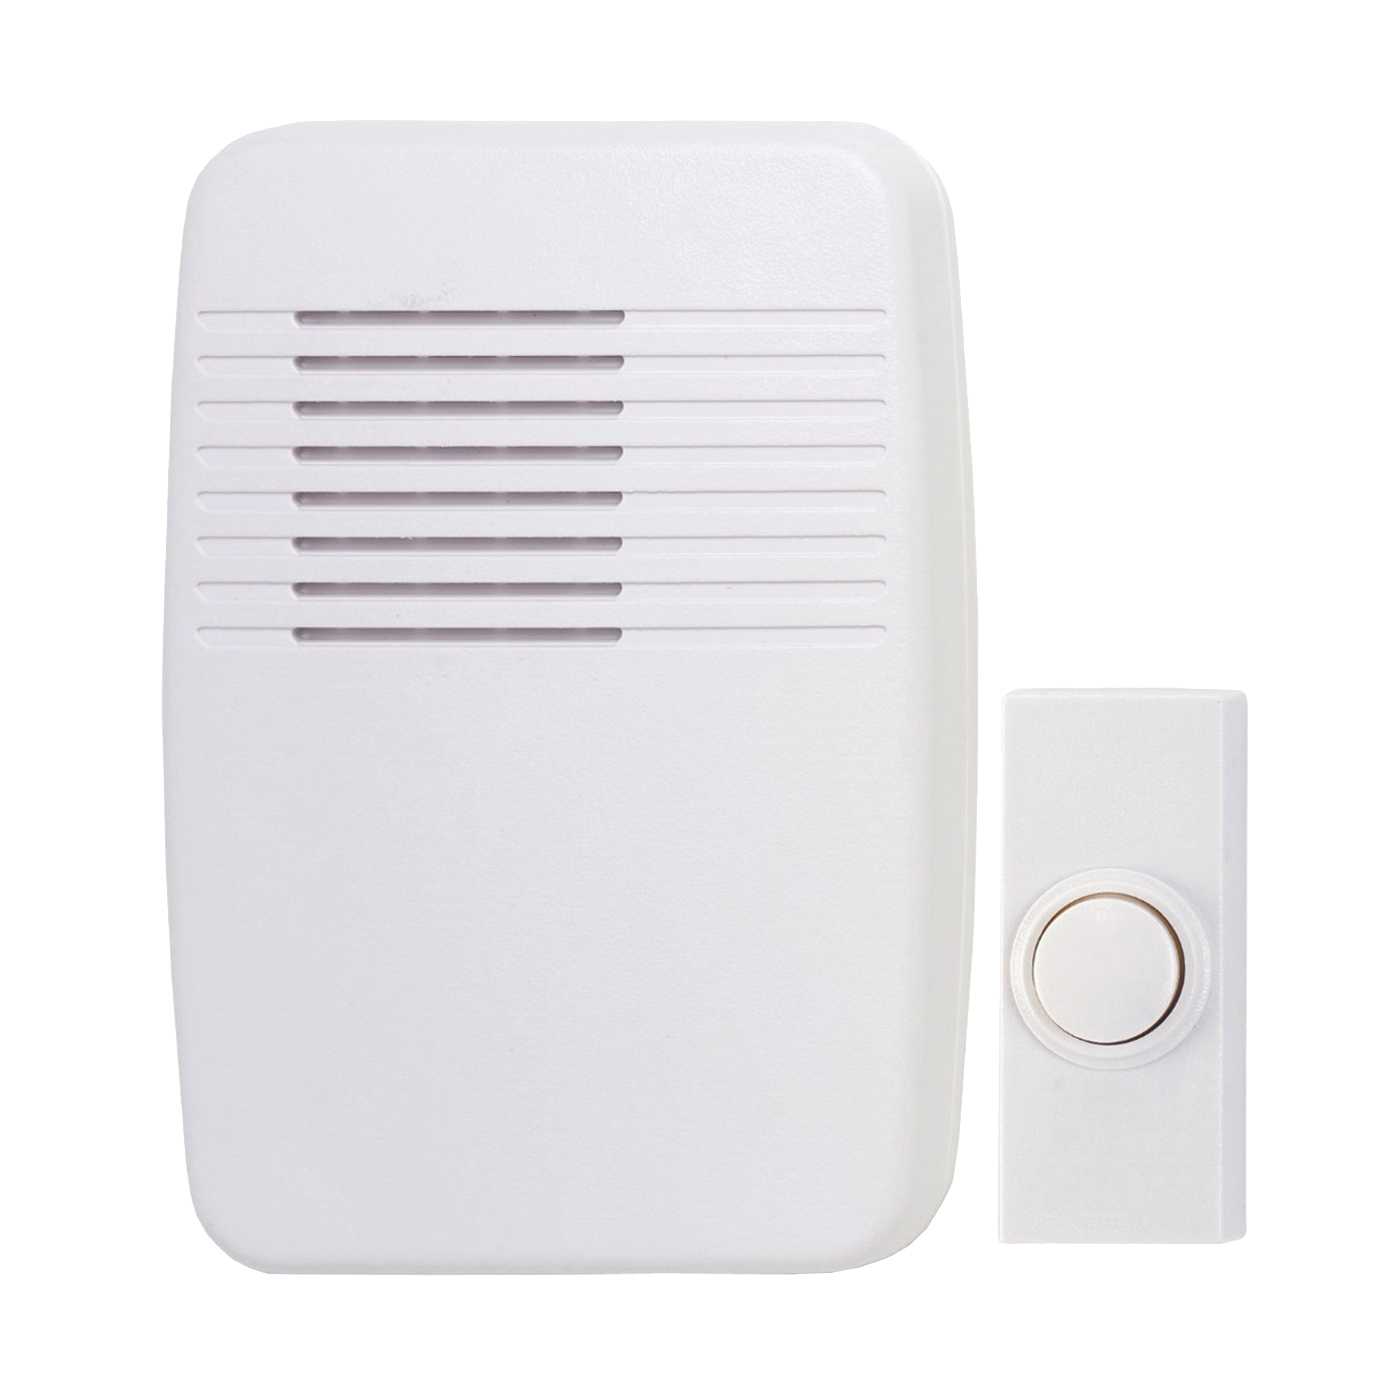 Picture of Heath Zenith SL-7366-02 Doorbell Kit, Ding, Ding-Dong, Westminster Tone, 75 dB, White